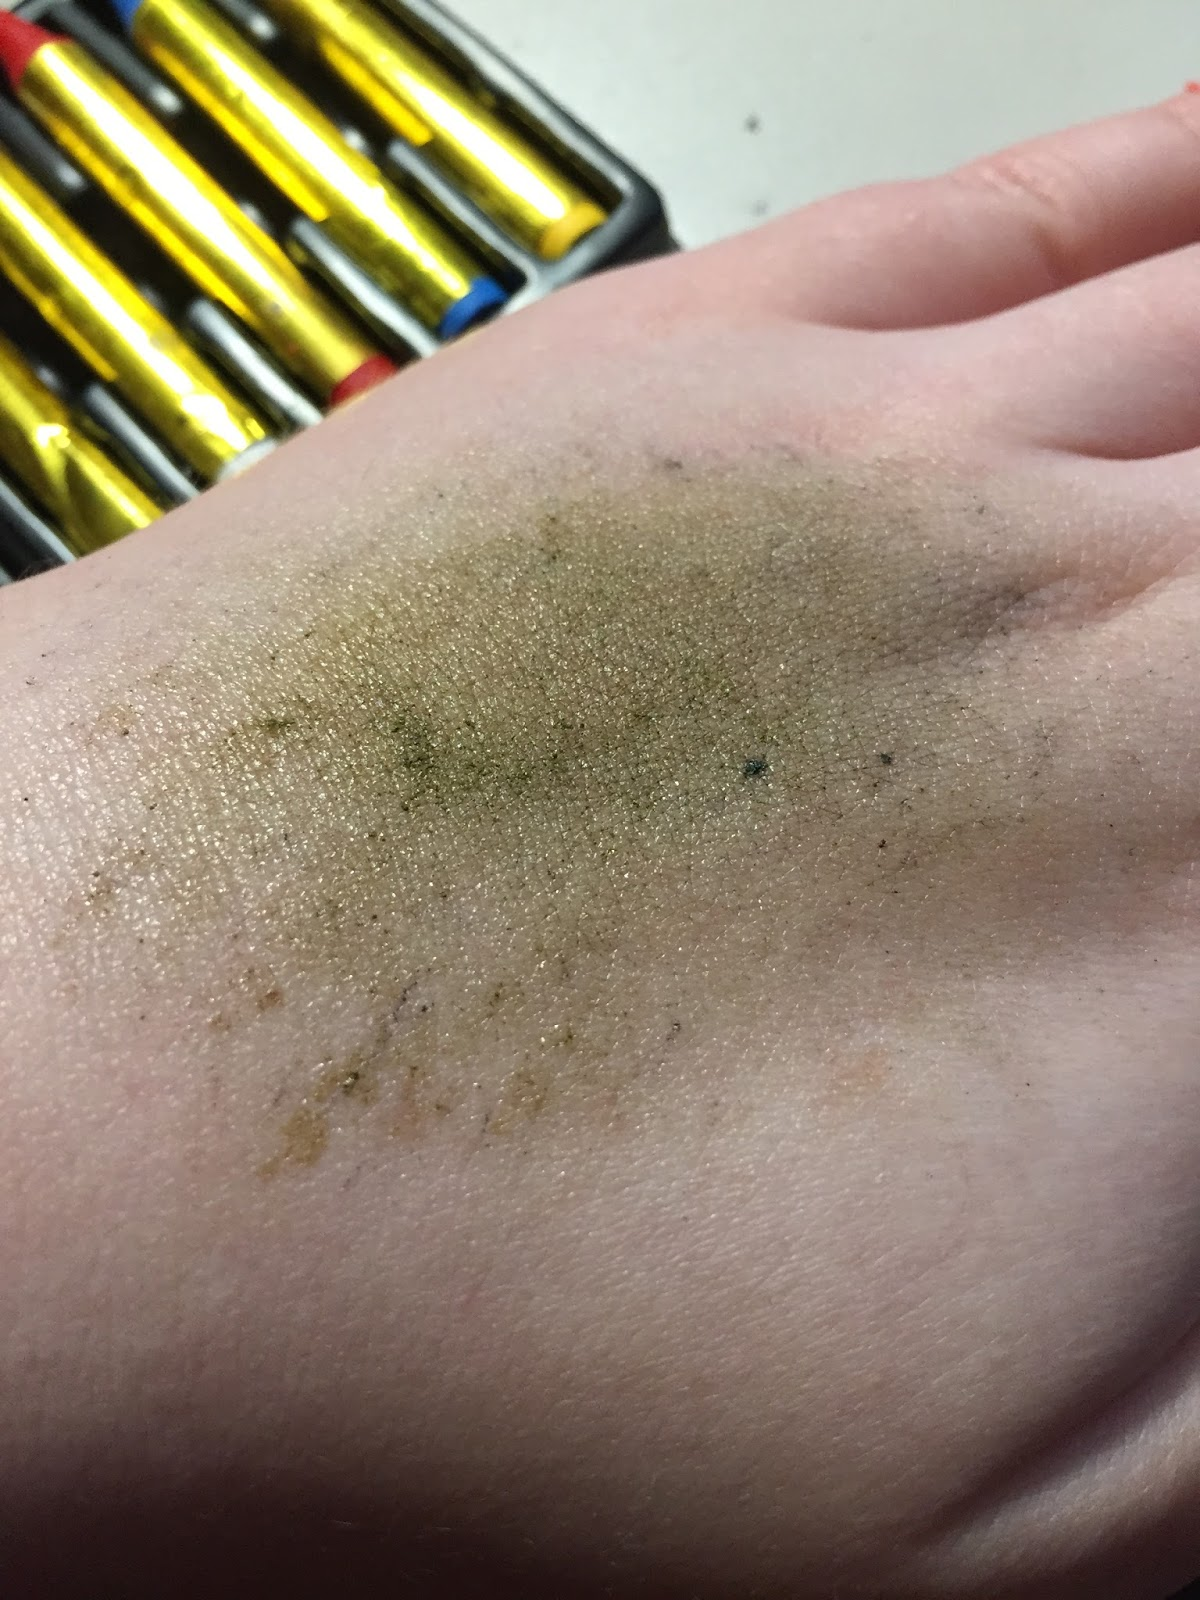 how old is a green bruise